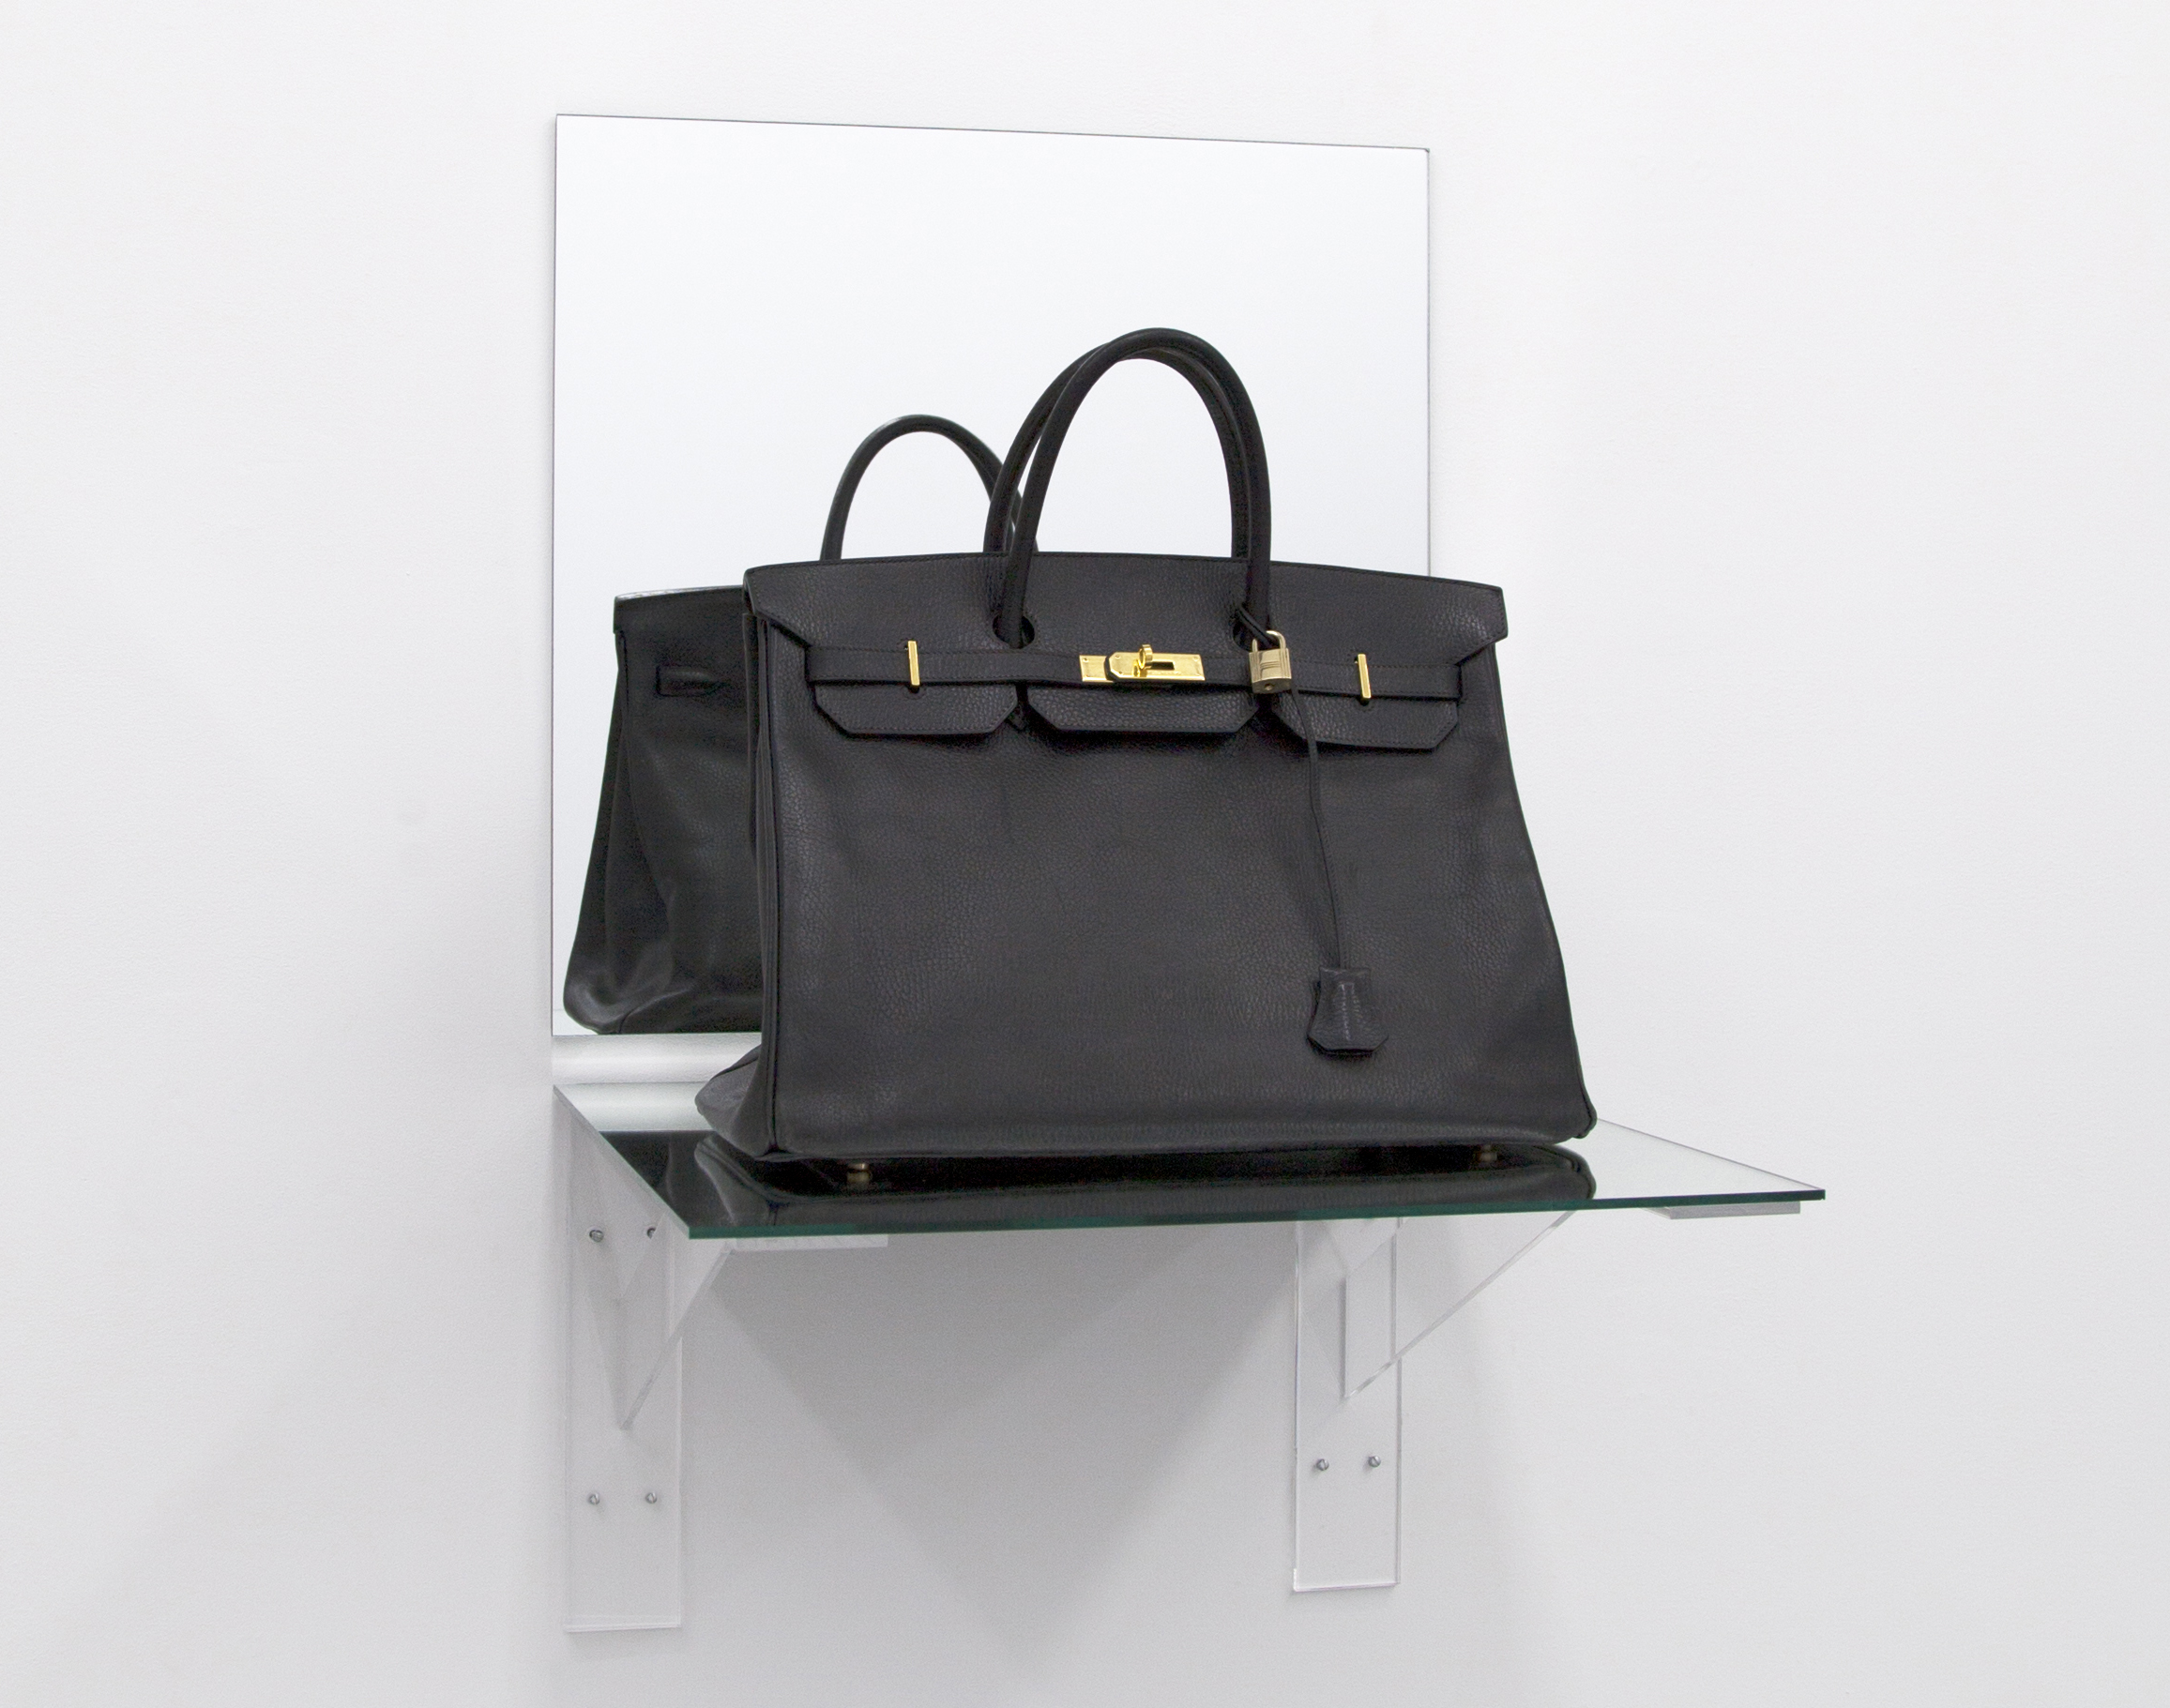 the kelly purse - hermes bags for sale blog